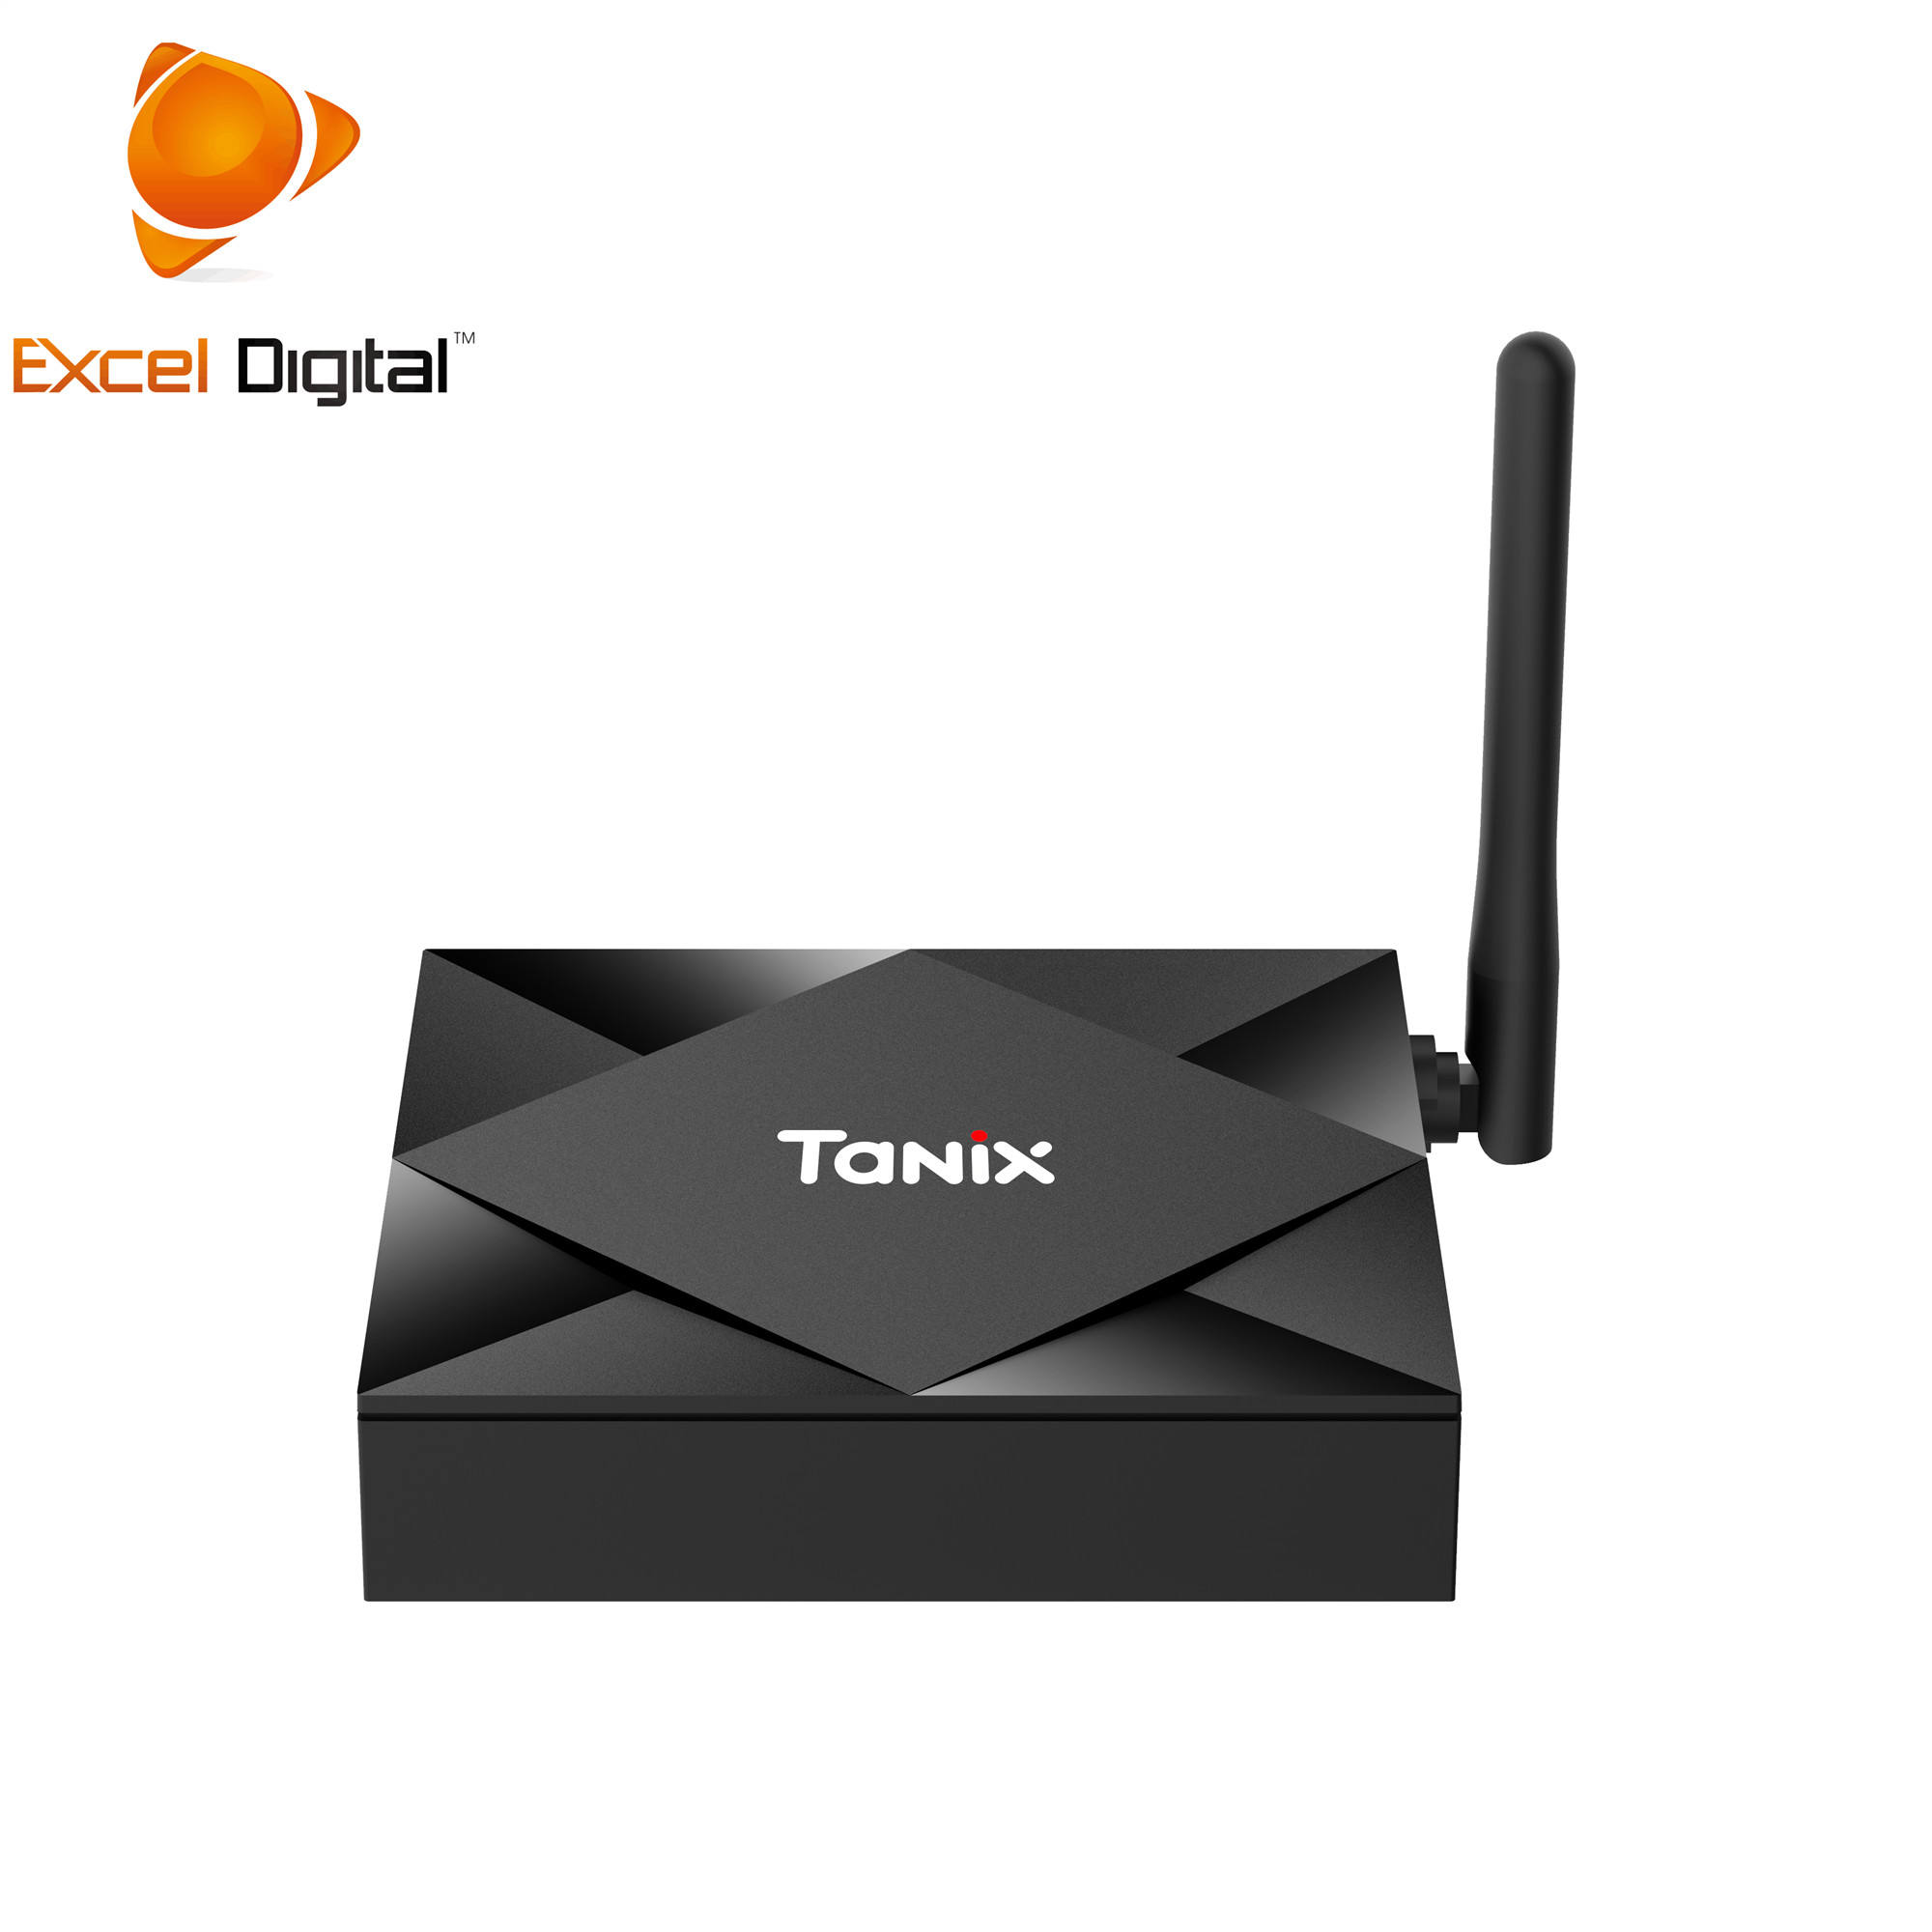 2020 Nieuwste Android 10.0 Allwinner H616 4Gb Dual Band Wifi Iptv Smart Android <span class=keywords><strong>Tv</strong></span> <span class=keywords><strong>Box</strong></span> 4K 8K tanix TX6S